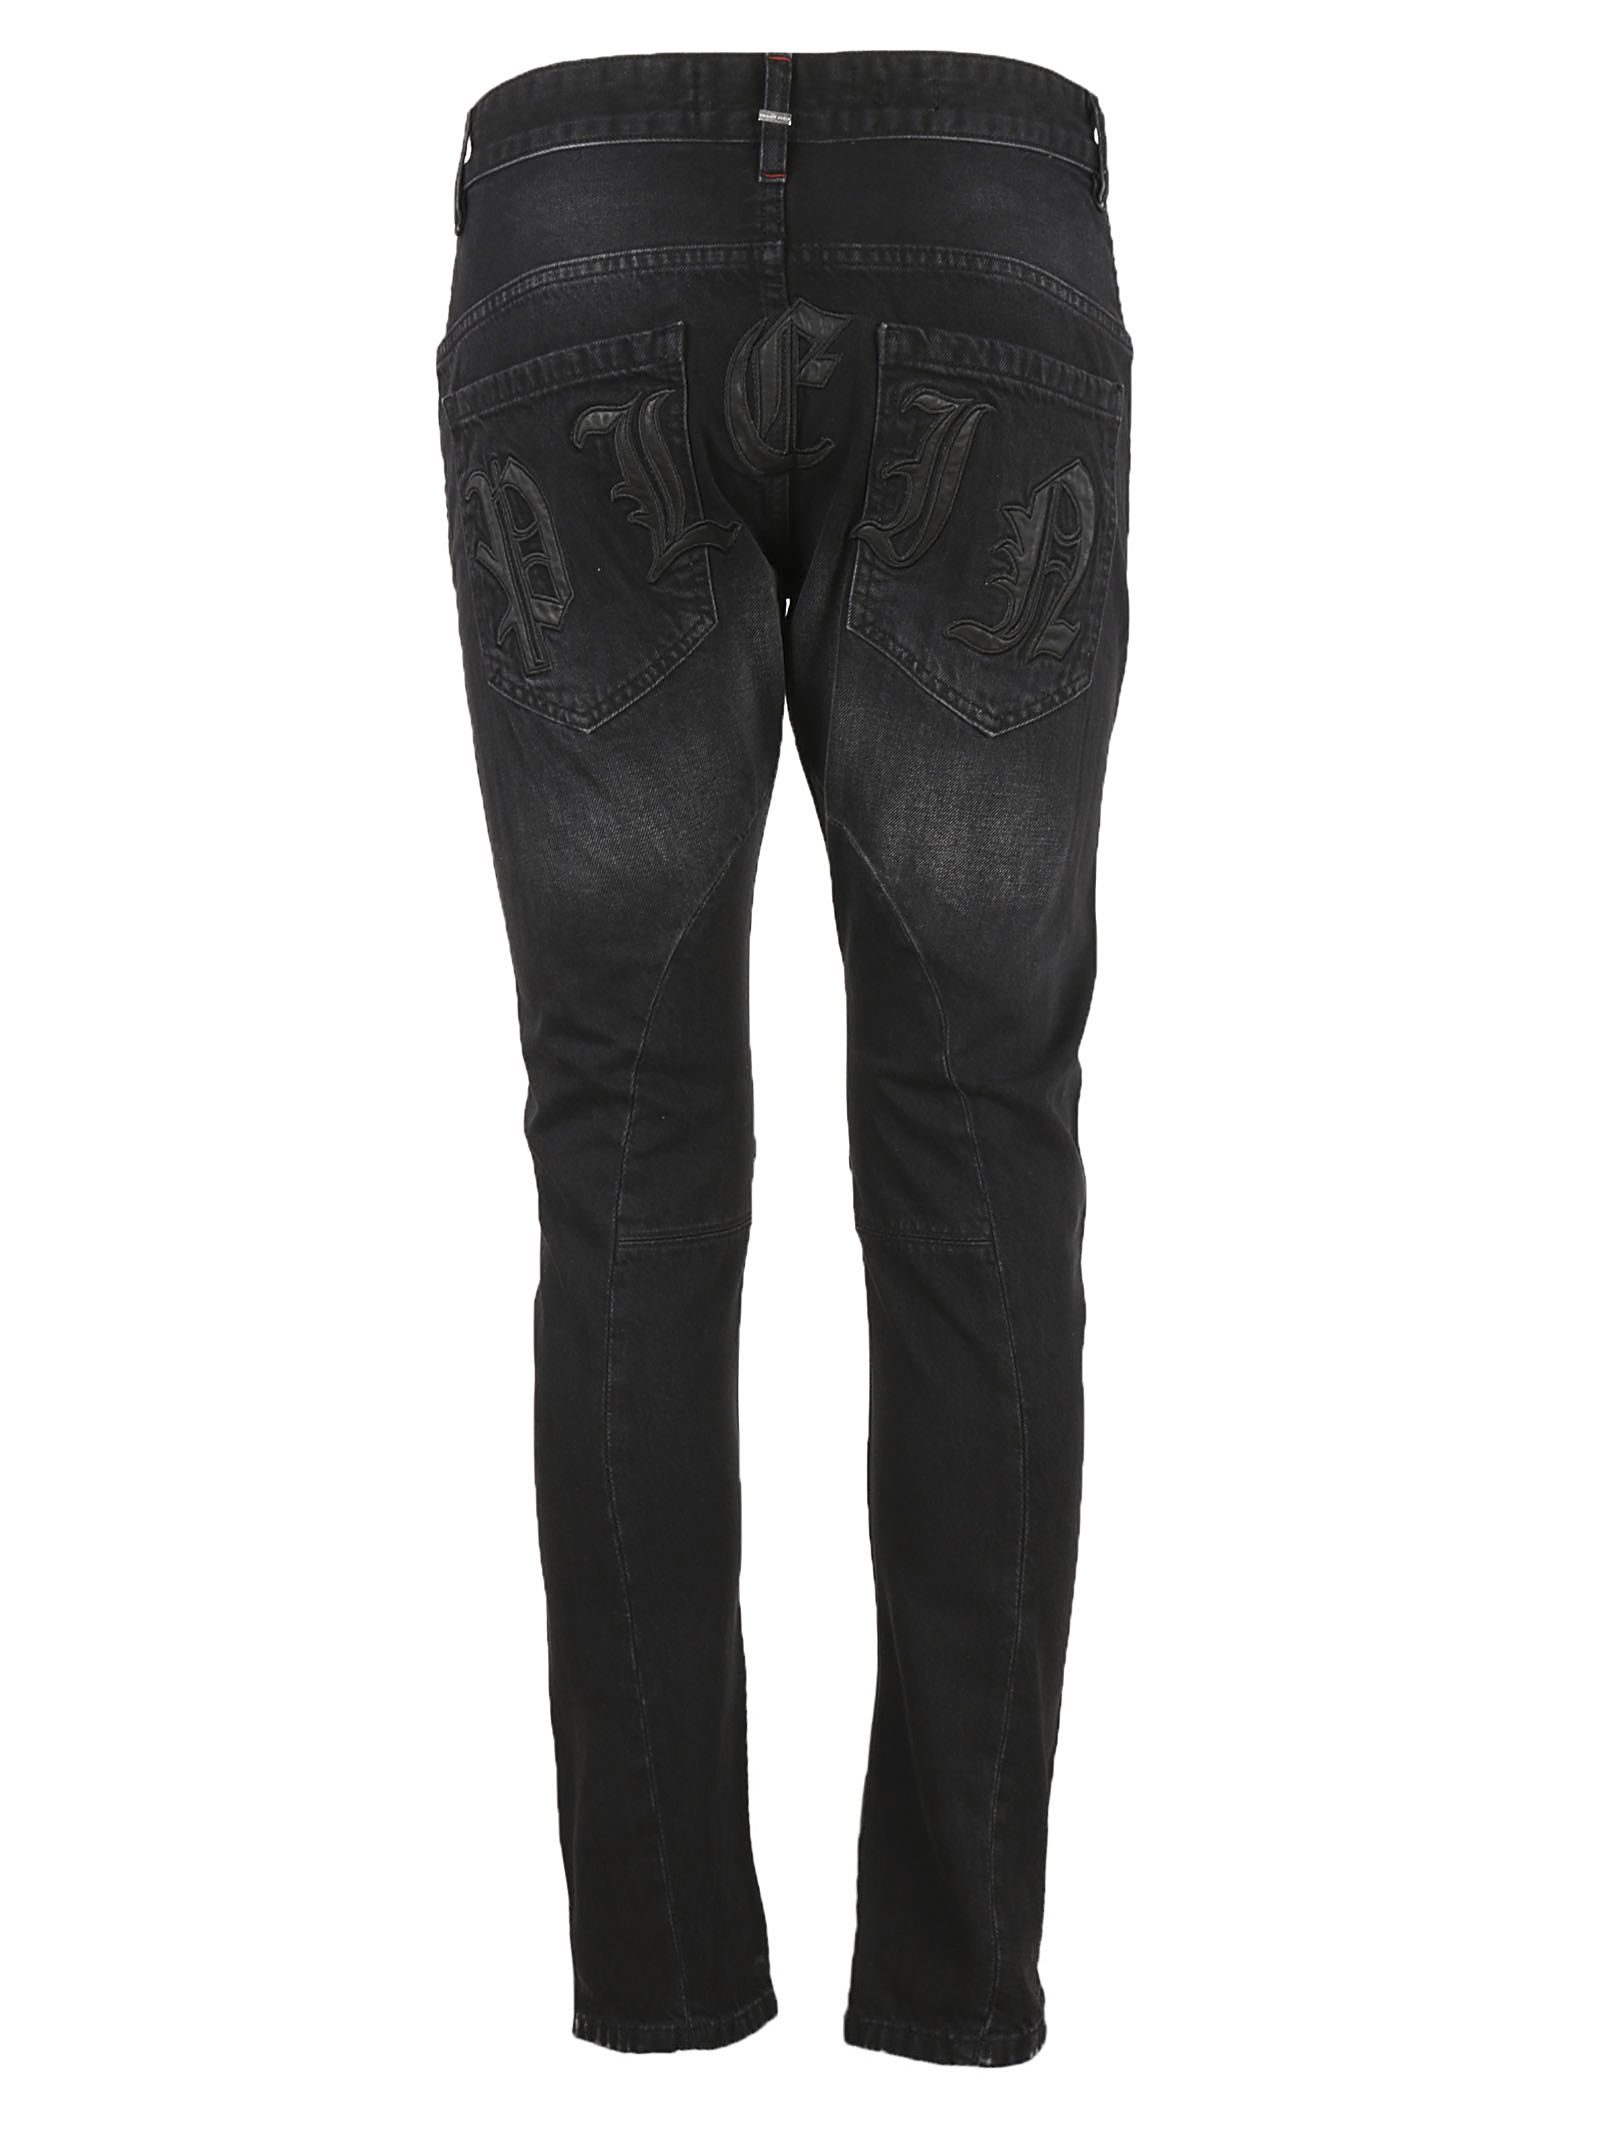 For Cheap For Sale distressed straight-leg jeans - Black Philipp Plein Discount Nicekicks Pay With Paypal For Sale VHqXcws9R